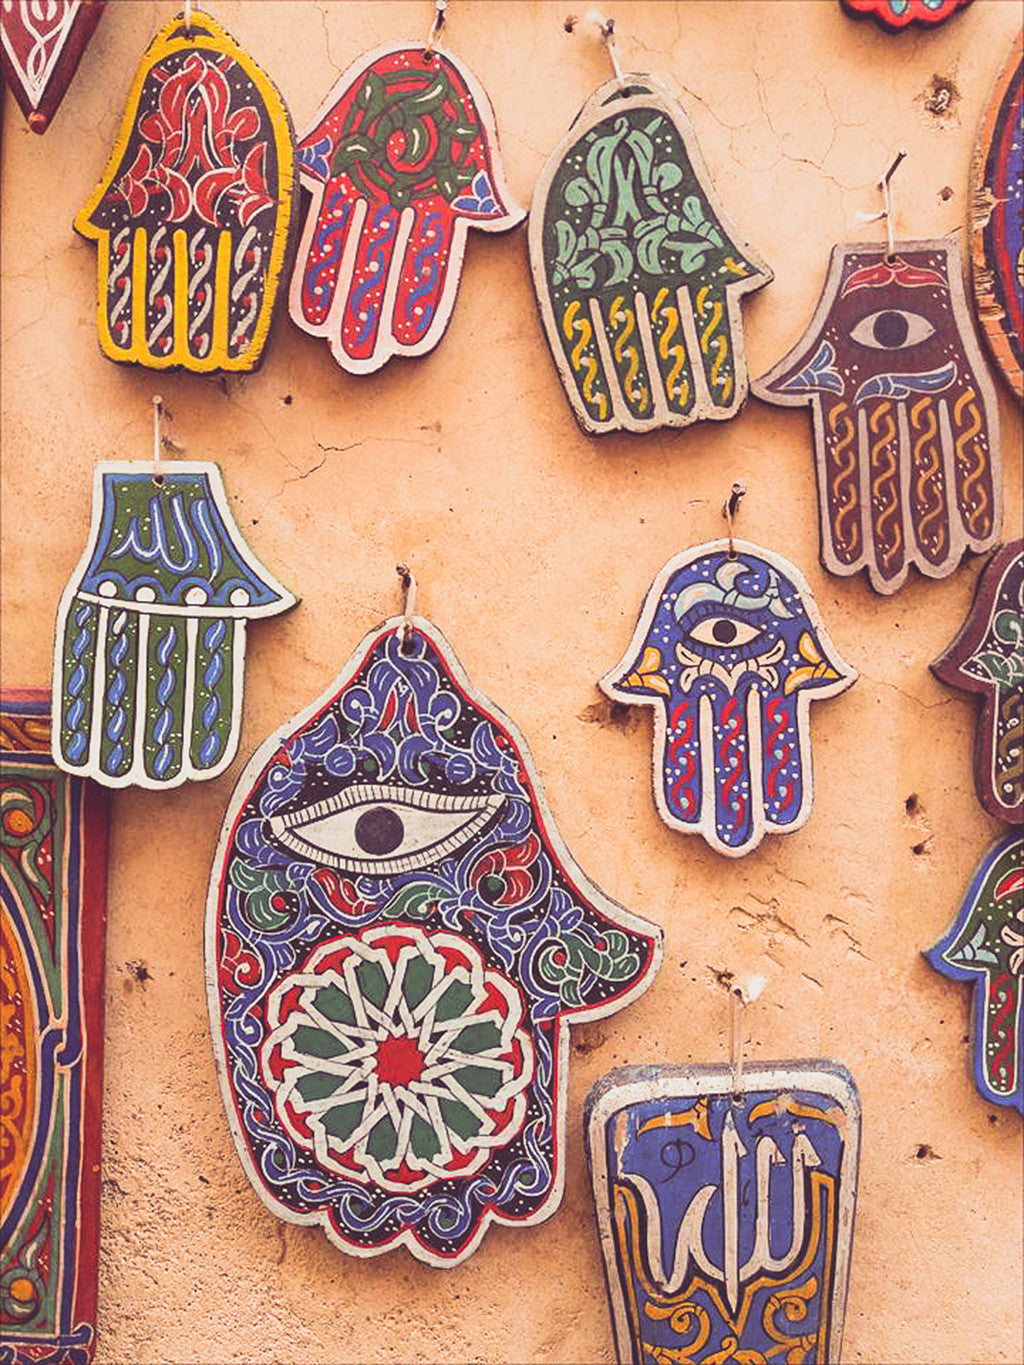 Marrakech: A Wanderer's Guide to Shopping the Charismatic Souk Markets